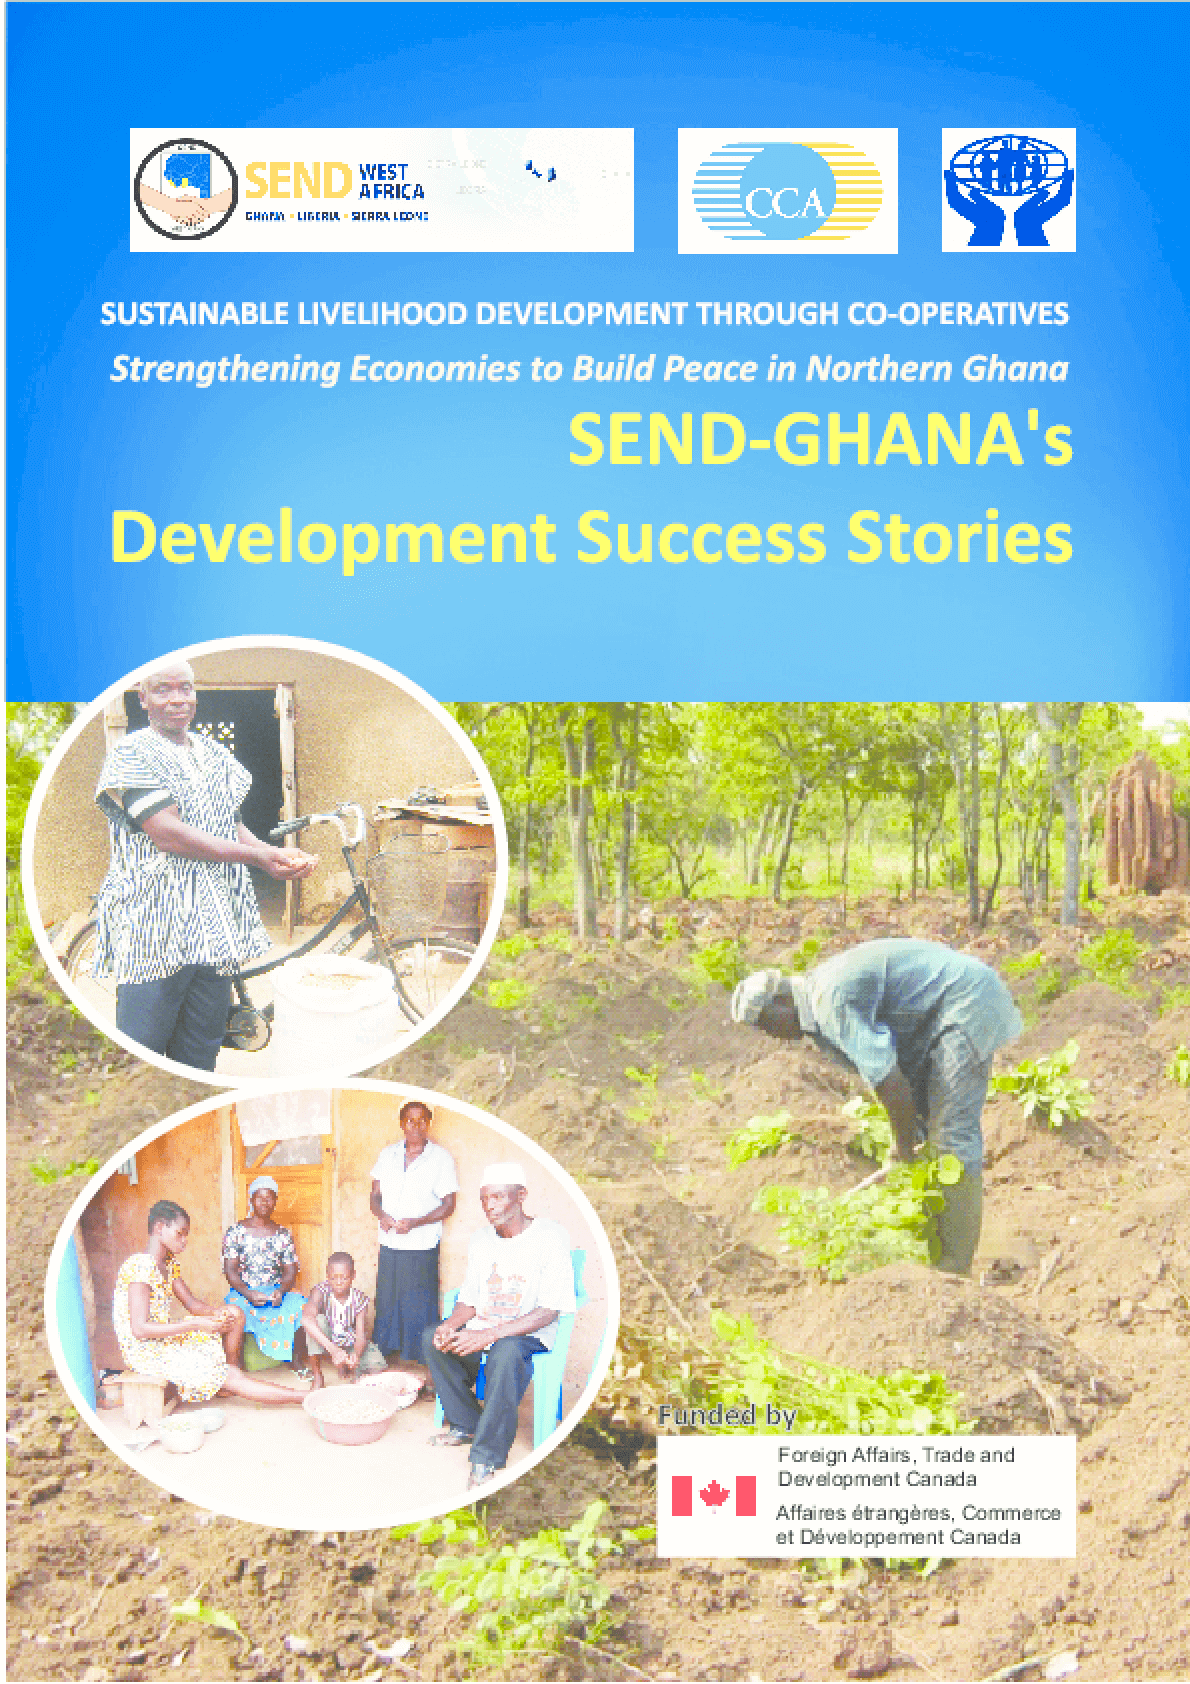 Sustainable Livelihood Development Through Co-operatives, Strengthening Economies to Build Peace in Northern Ghana: SEND-Ghana's Development Success Stories